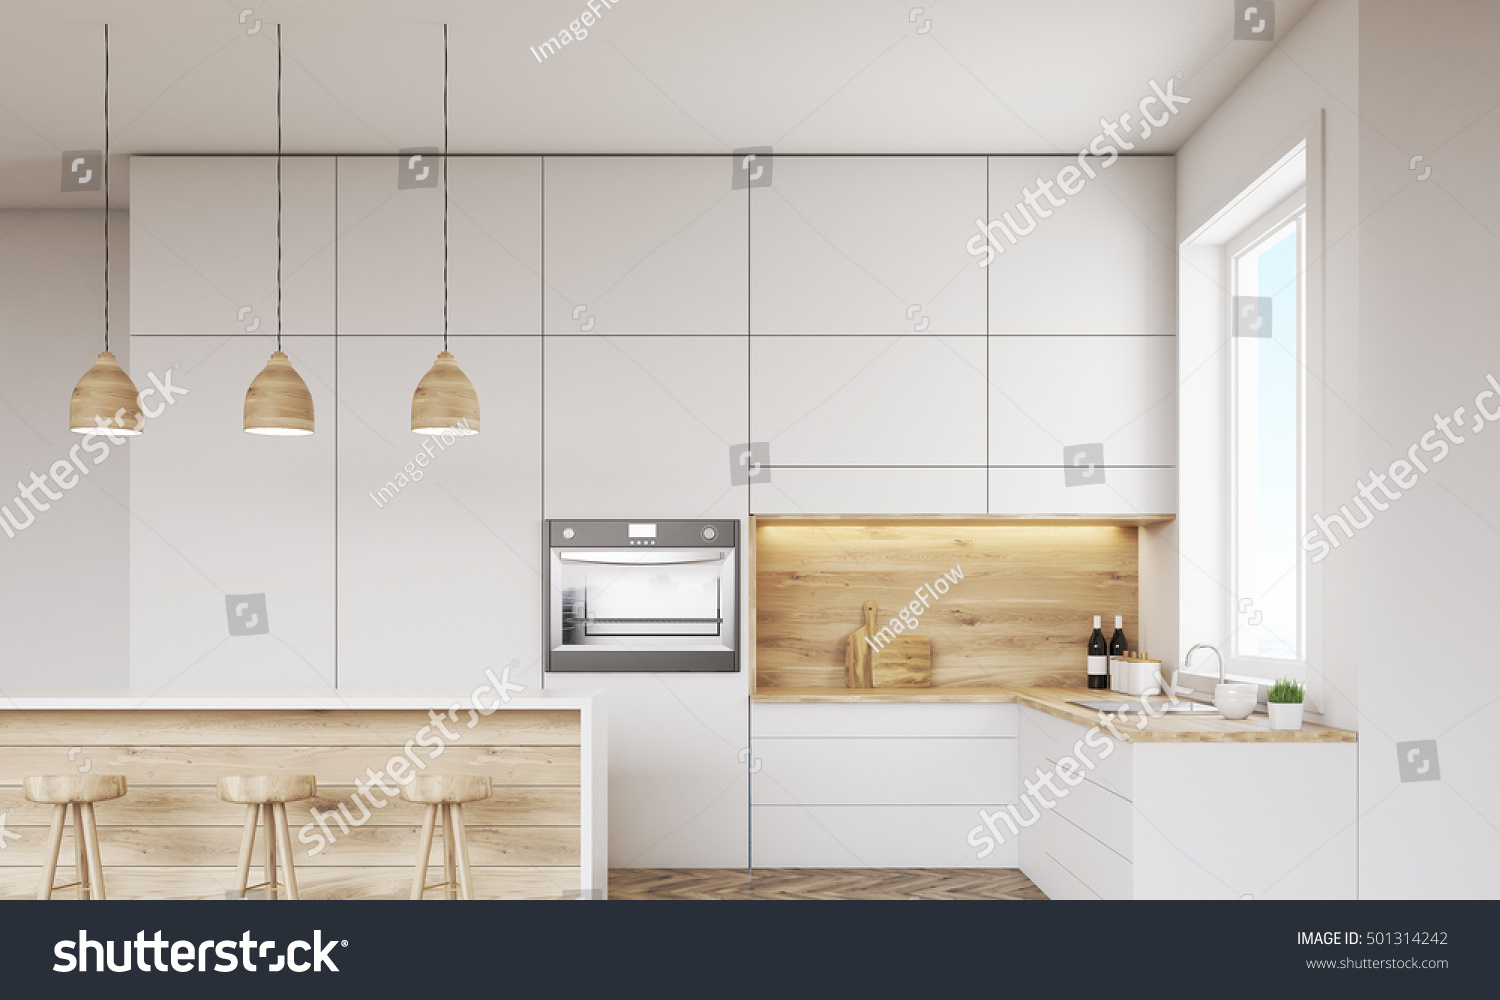 Front View Kitchen Oven Sink Countertops Stock Illustration ...